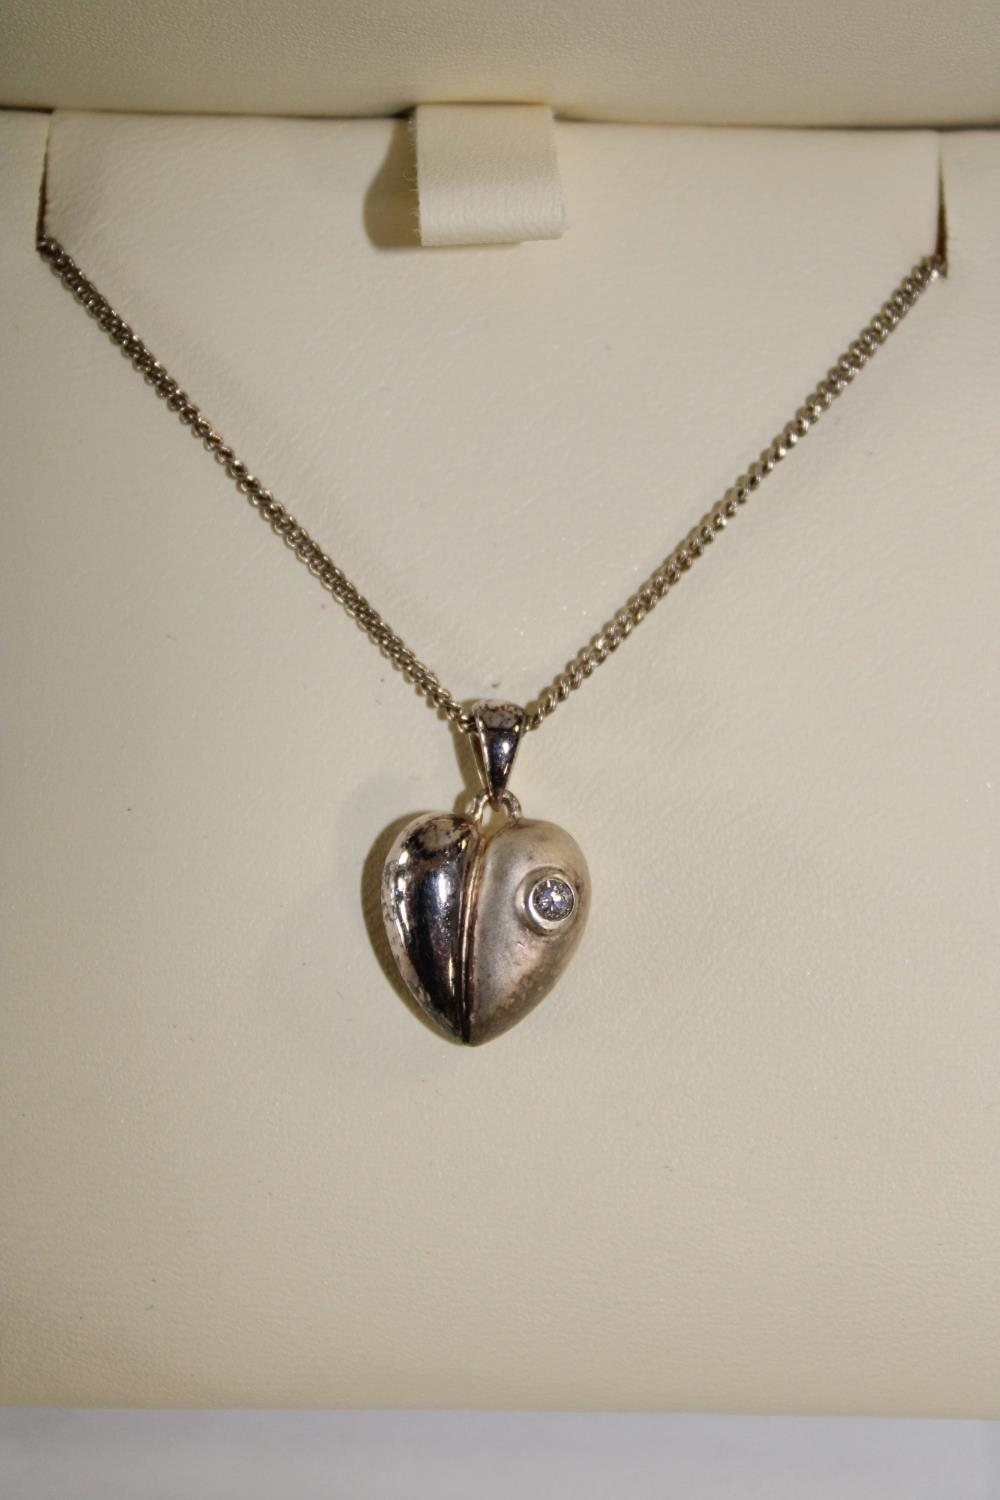 A Royal Mint moonlight silver & diamond heart pendant with silver chain